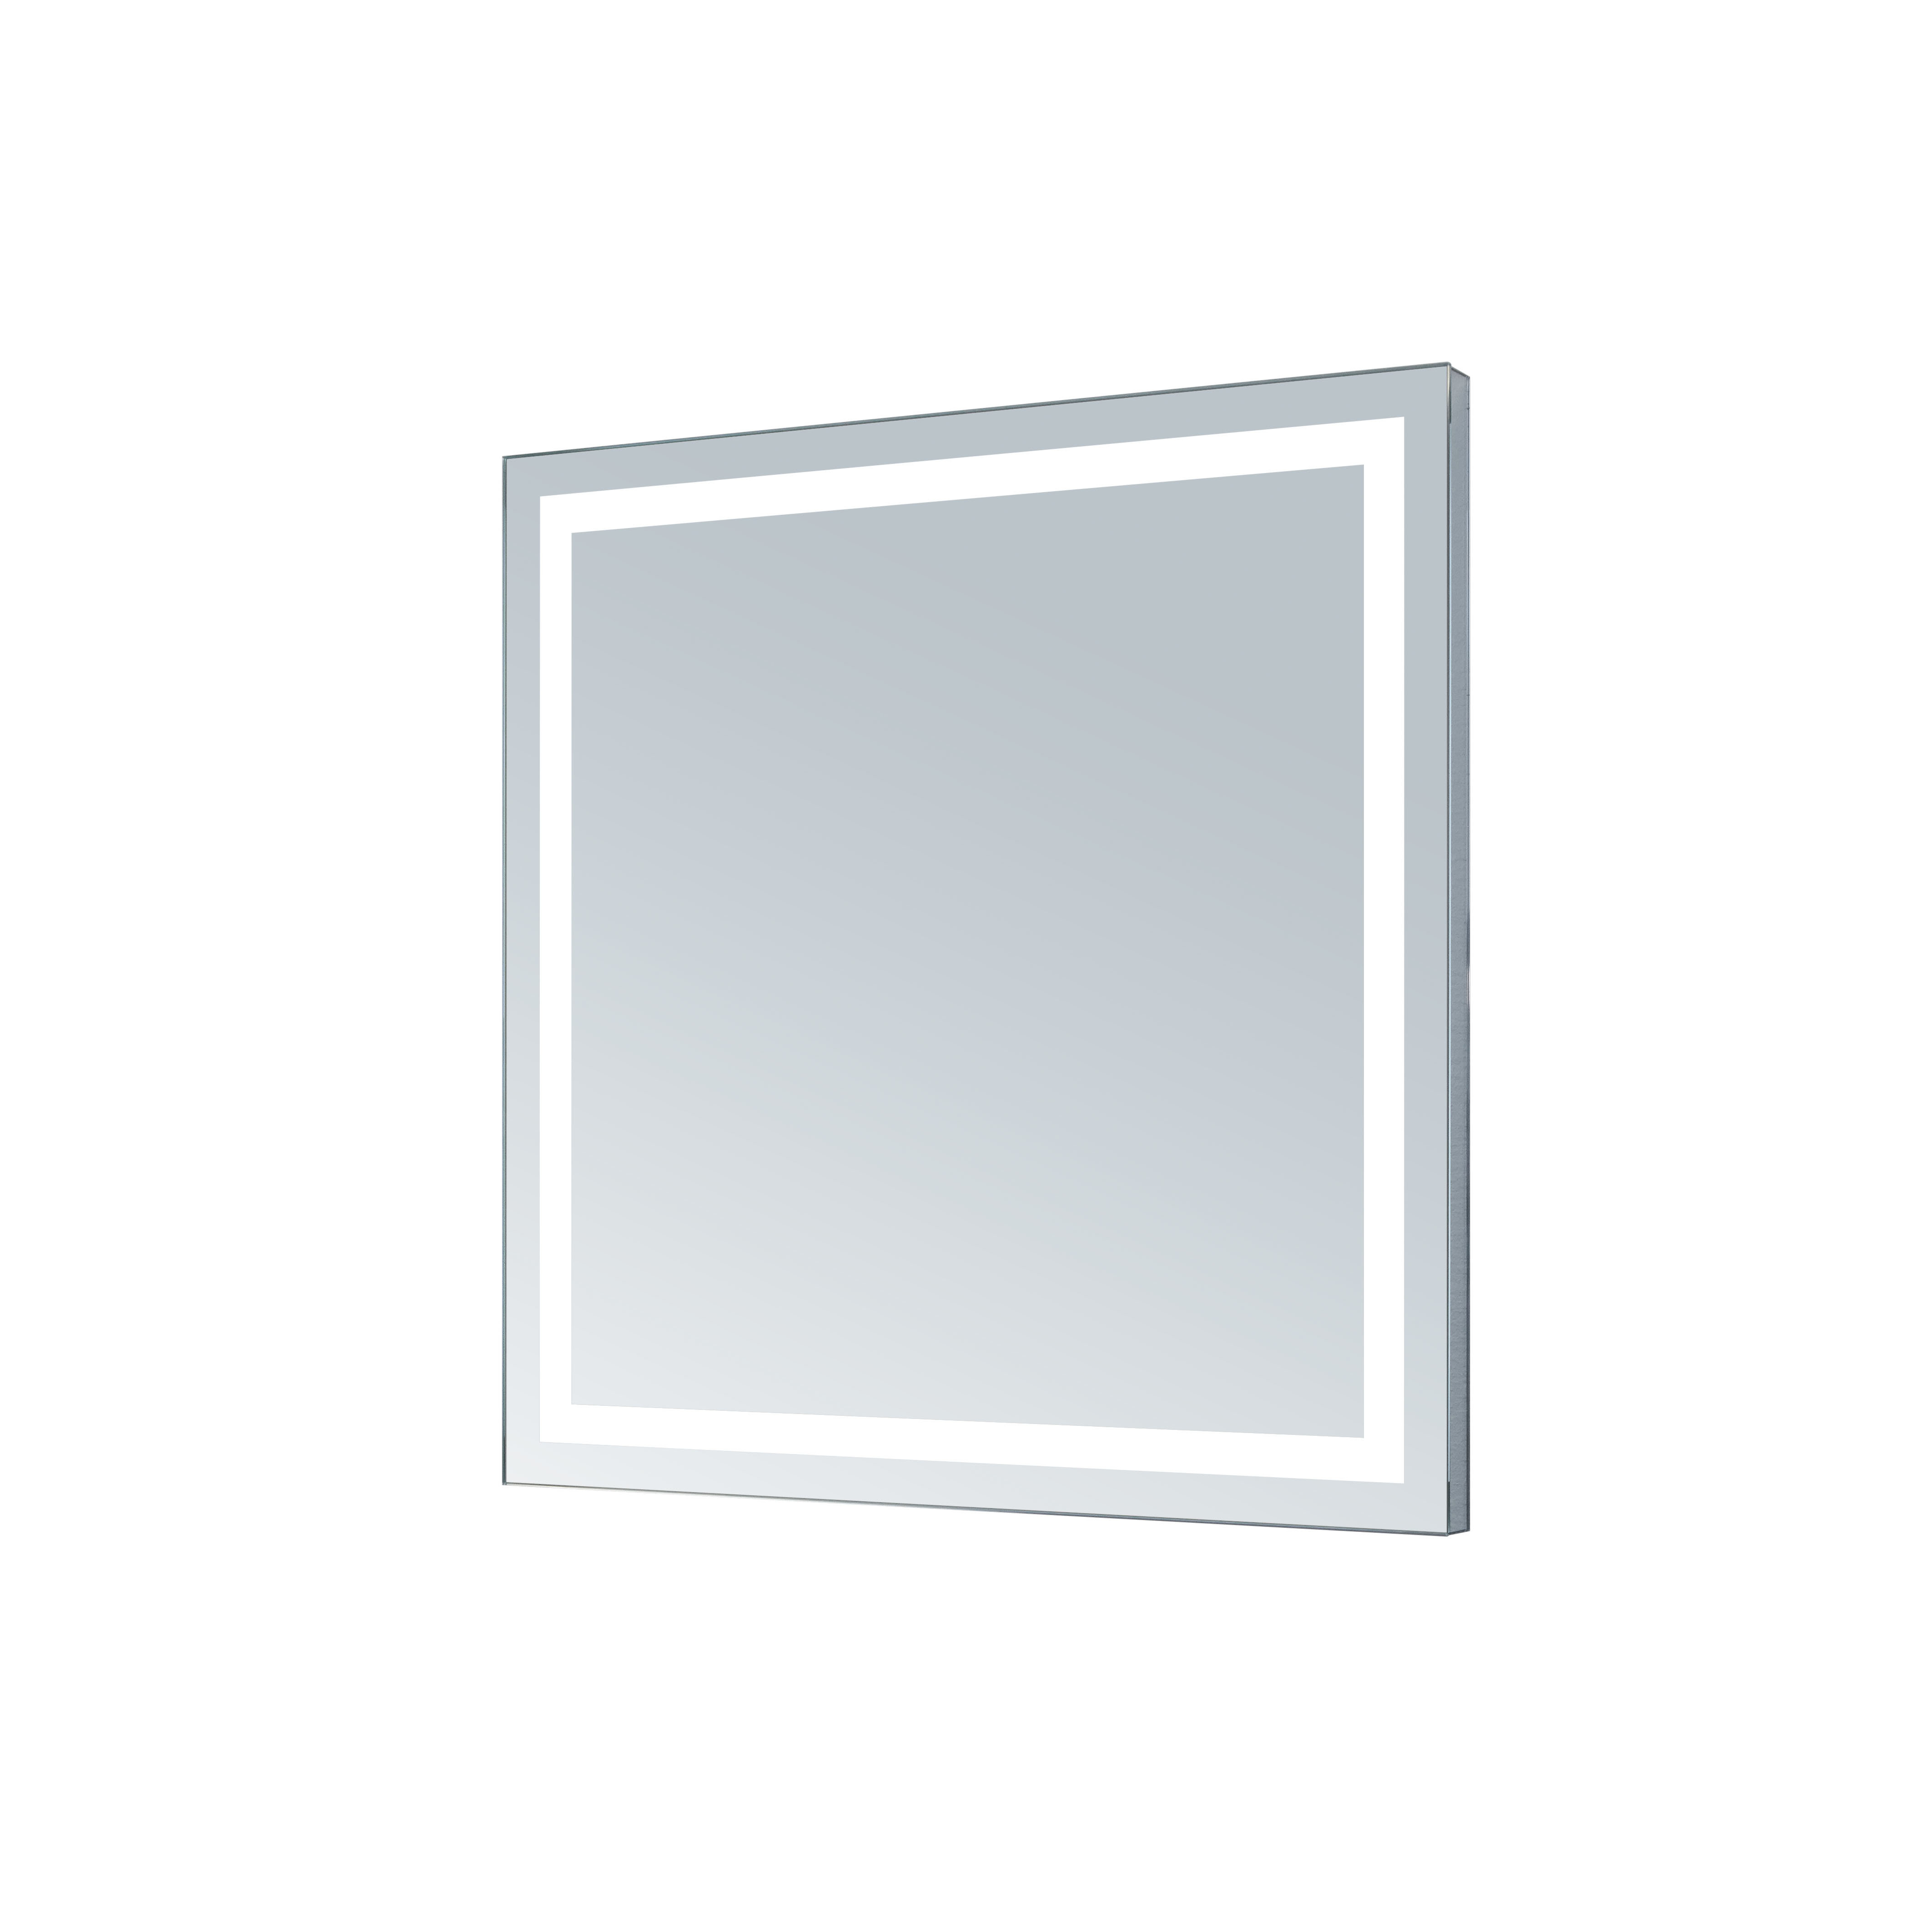 Aluminum Frame Electric Wall Mirror Within Tetbury Frameless Tri Bevel Wall Mirrors (View 9 of 20)